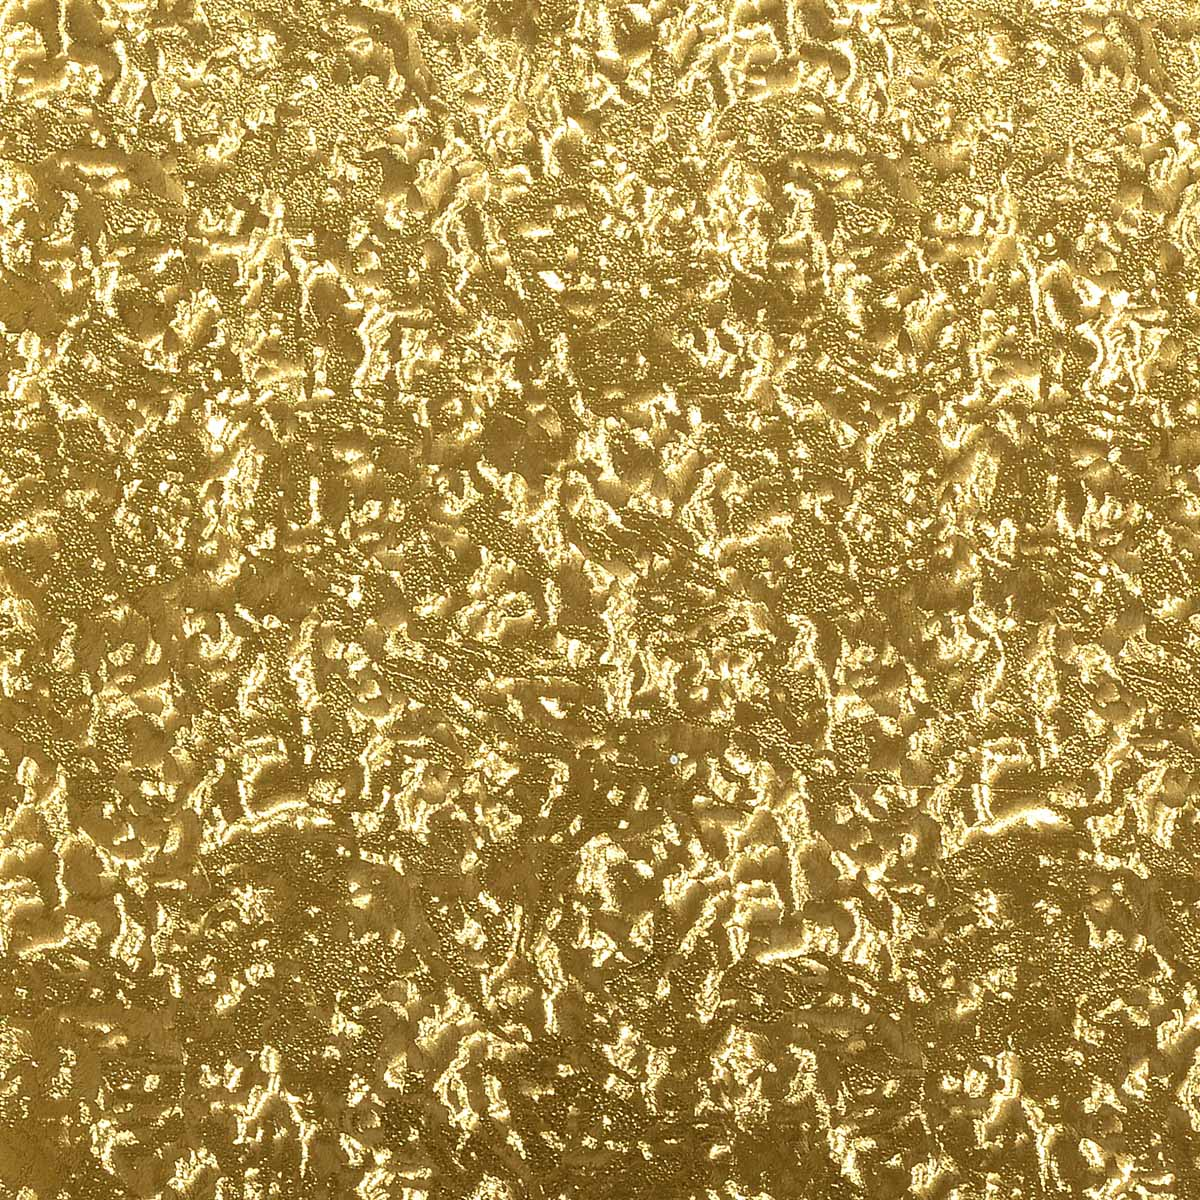 Gold Foil Wallpaper 02 1200x1200